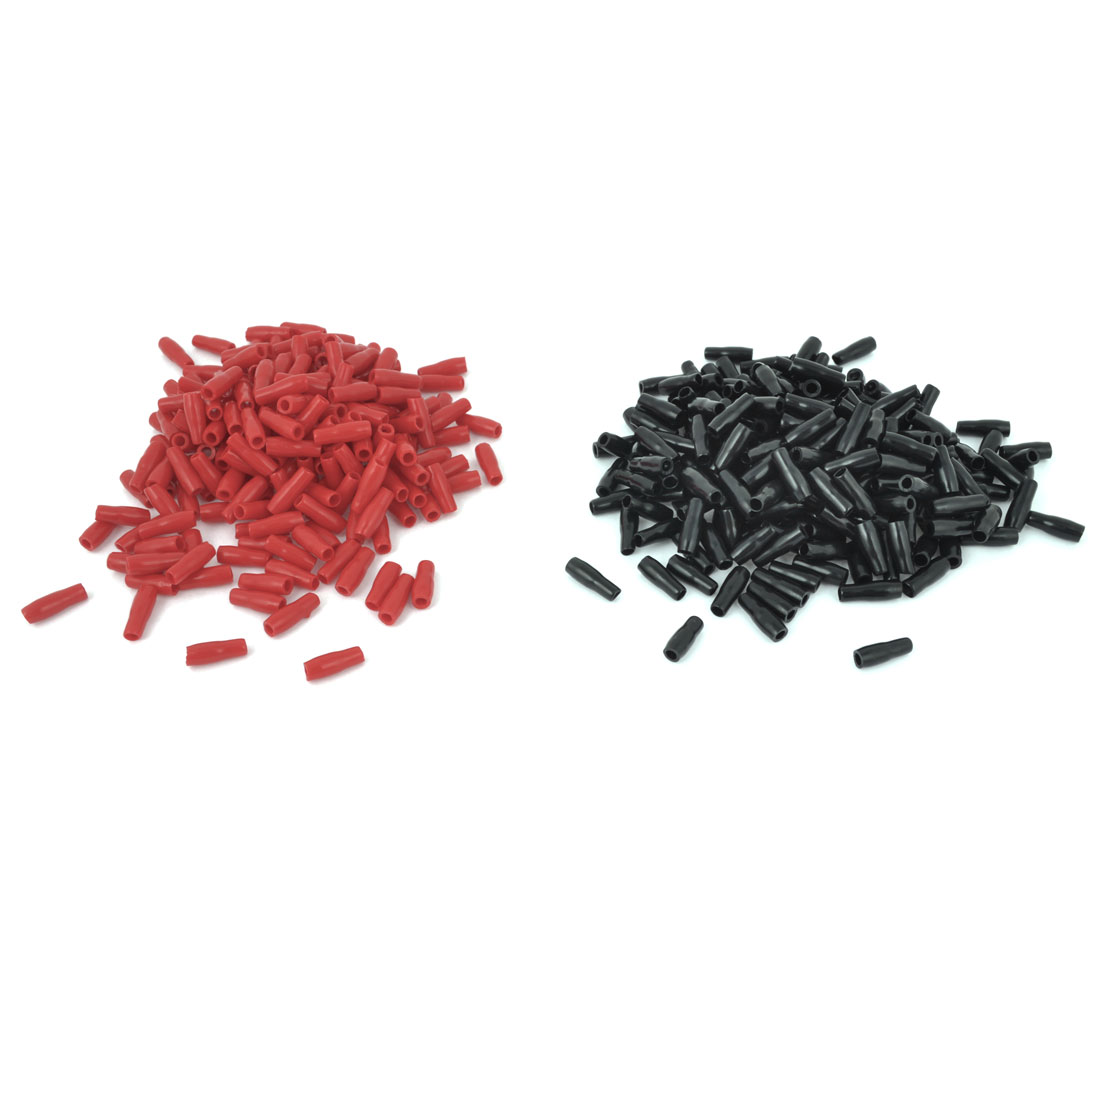 1000 Pieces 1.25-1.5mm2 Soft PVC Wire Terminal Sleeves Insulating Covers Caps